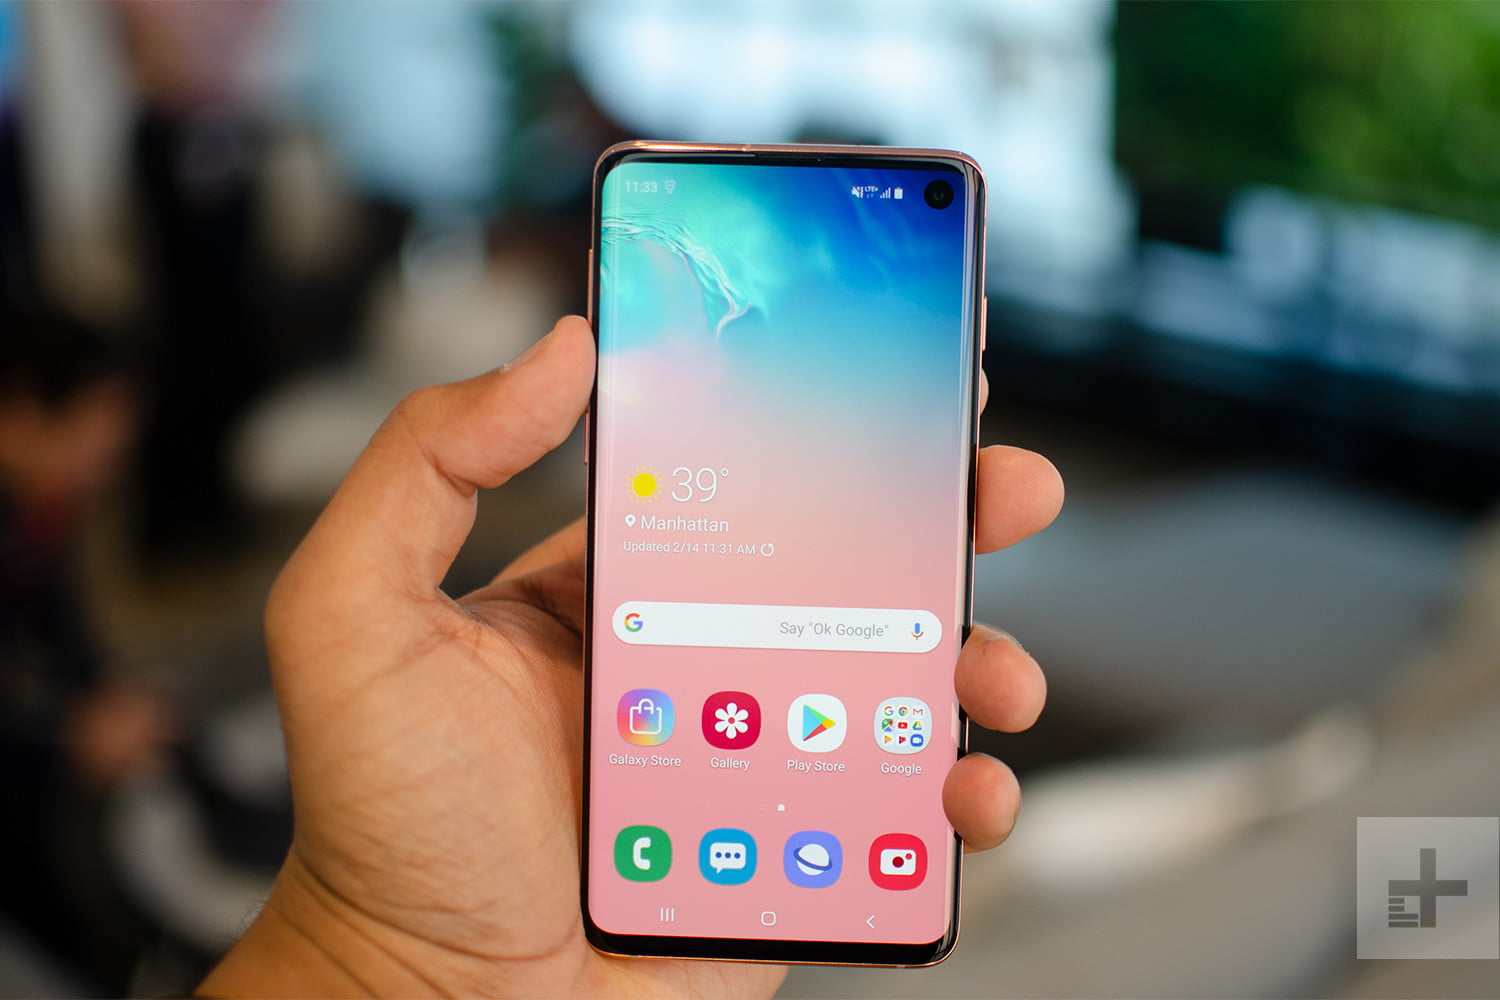 samsung 39 s s10e joins galaxy s10 s10 plus 2019 smartphone. Black Bedroom Furniture Sets. Home Design Ideas